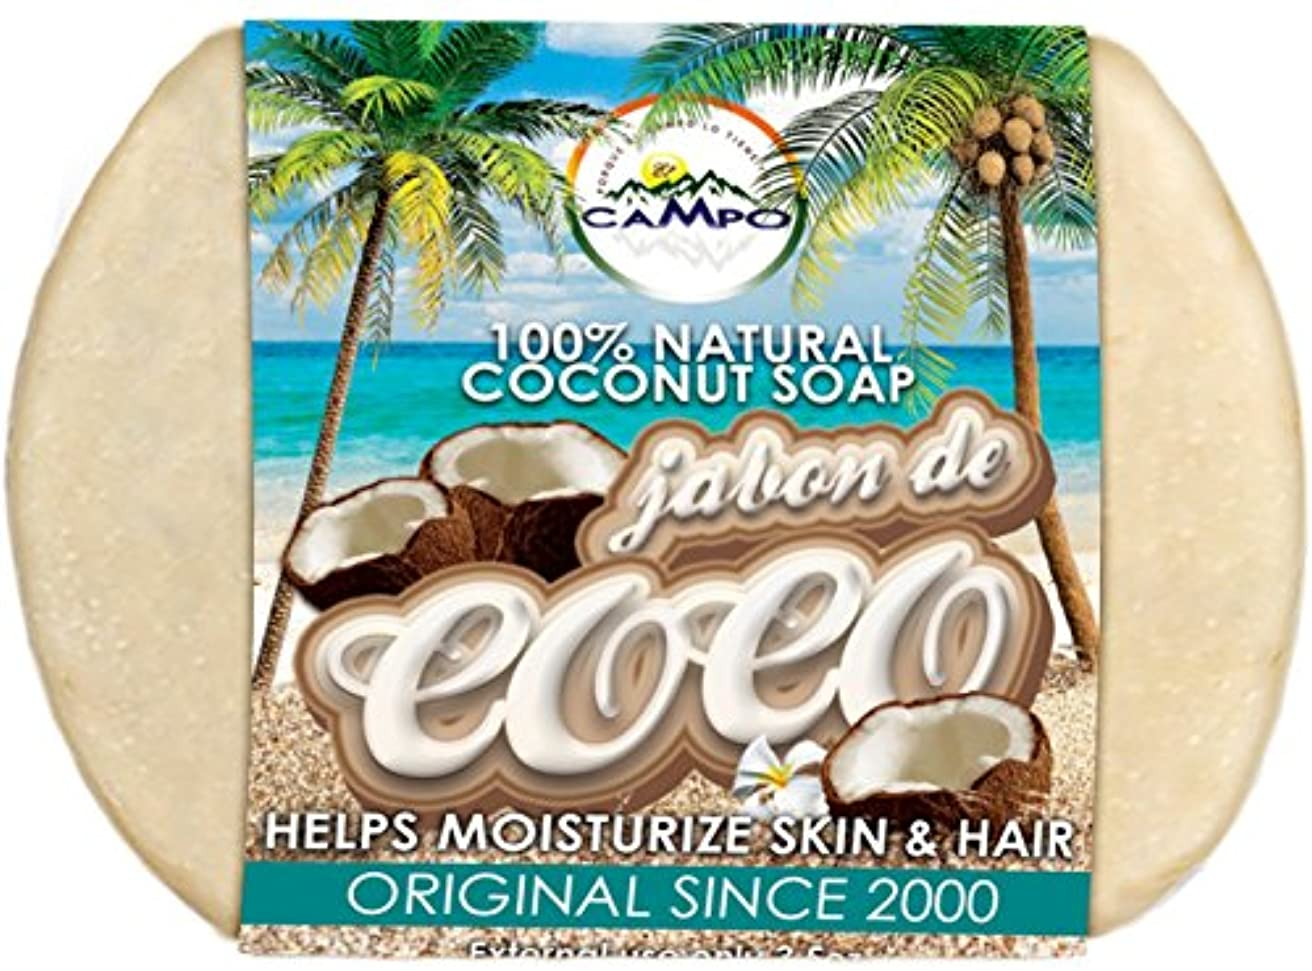 Jabon De Coco (Coconut Soap) (dollars)14.99 High Quality Use Once and See the Difference